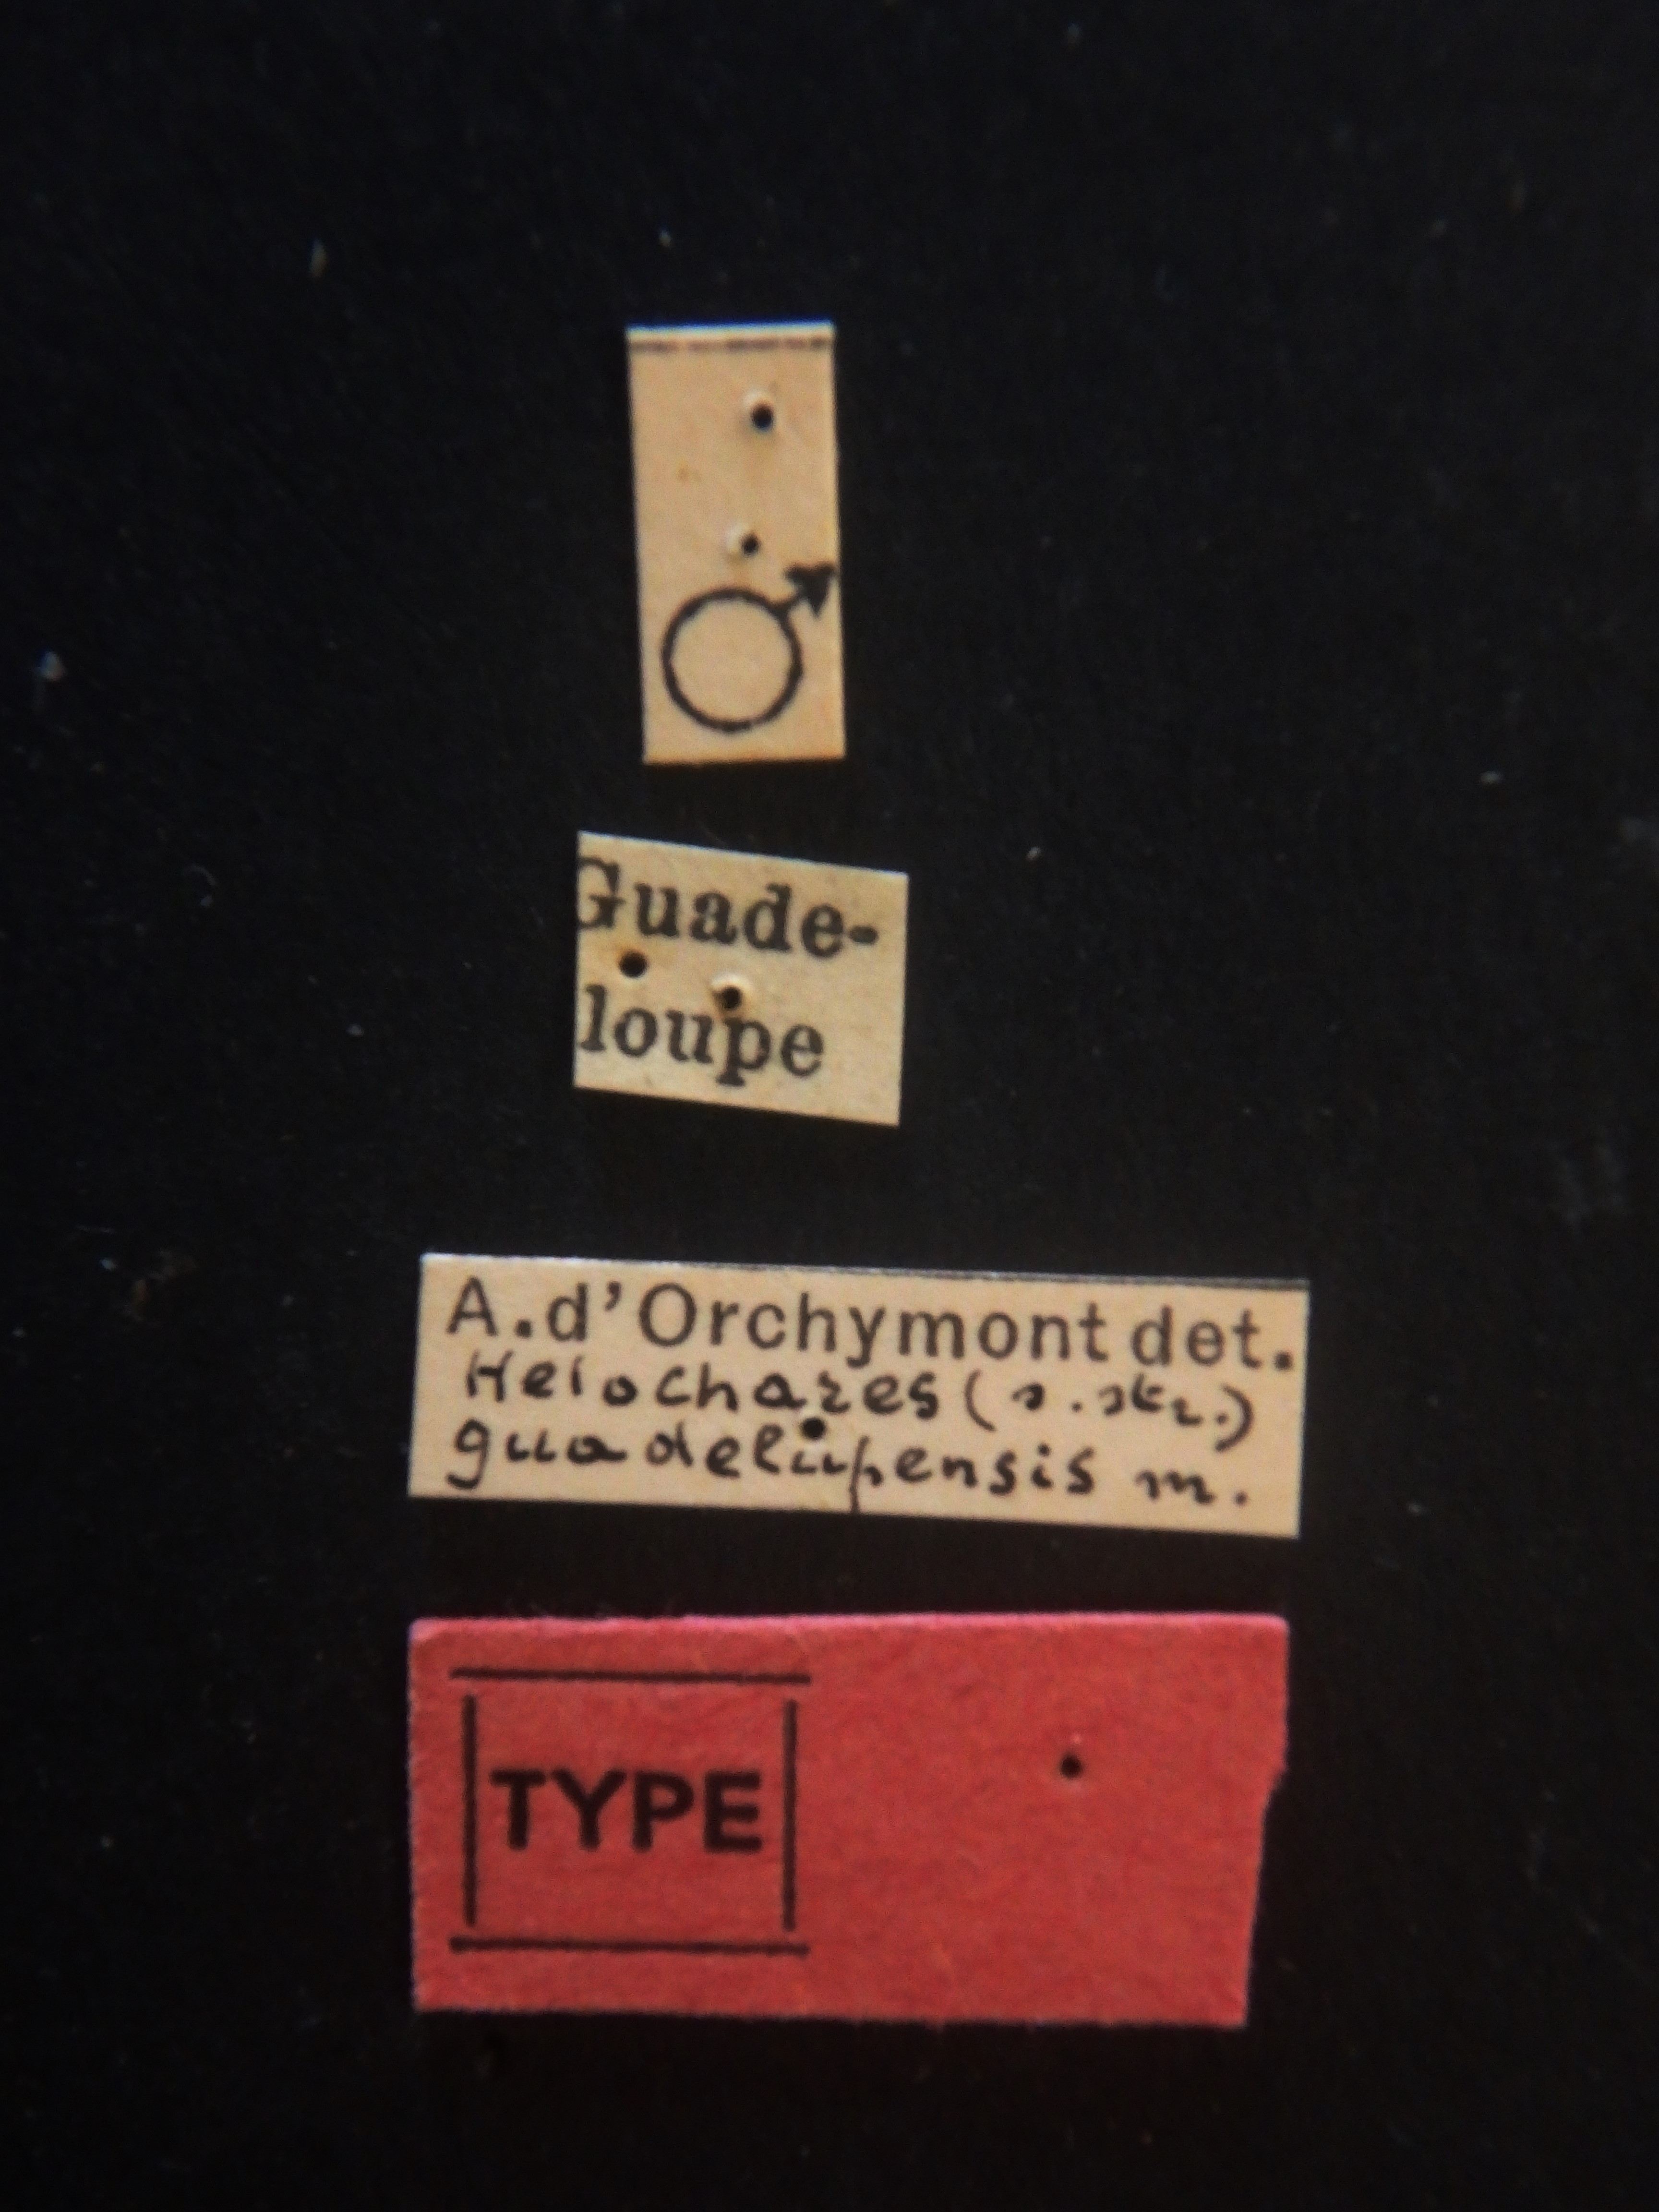 Helochares (Helochares) guadelupensis M t  Labels.JPG